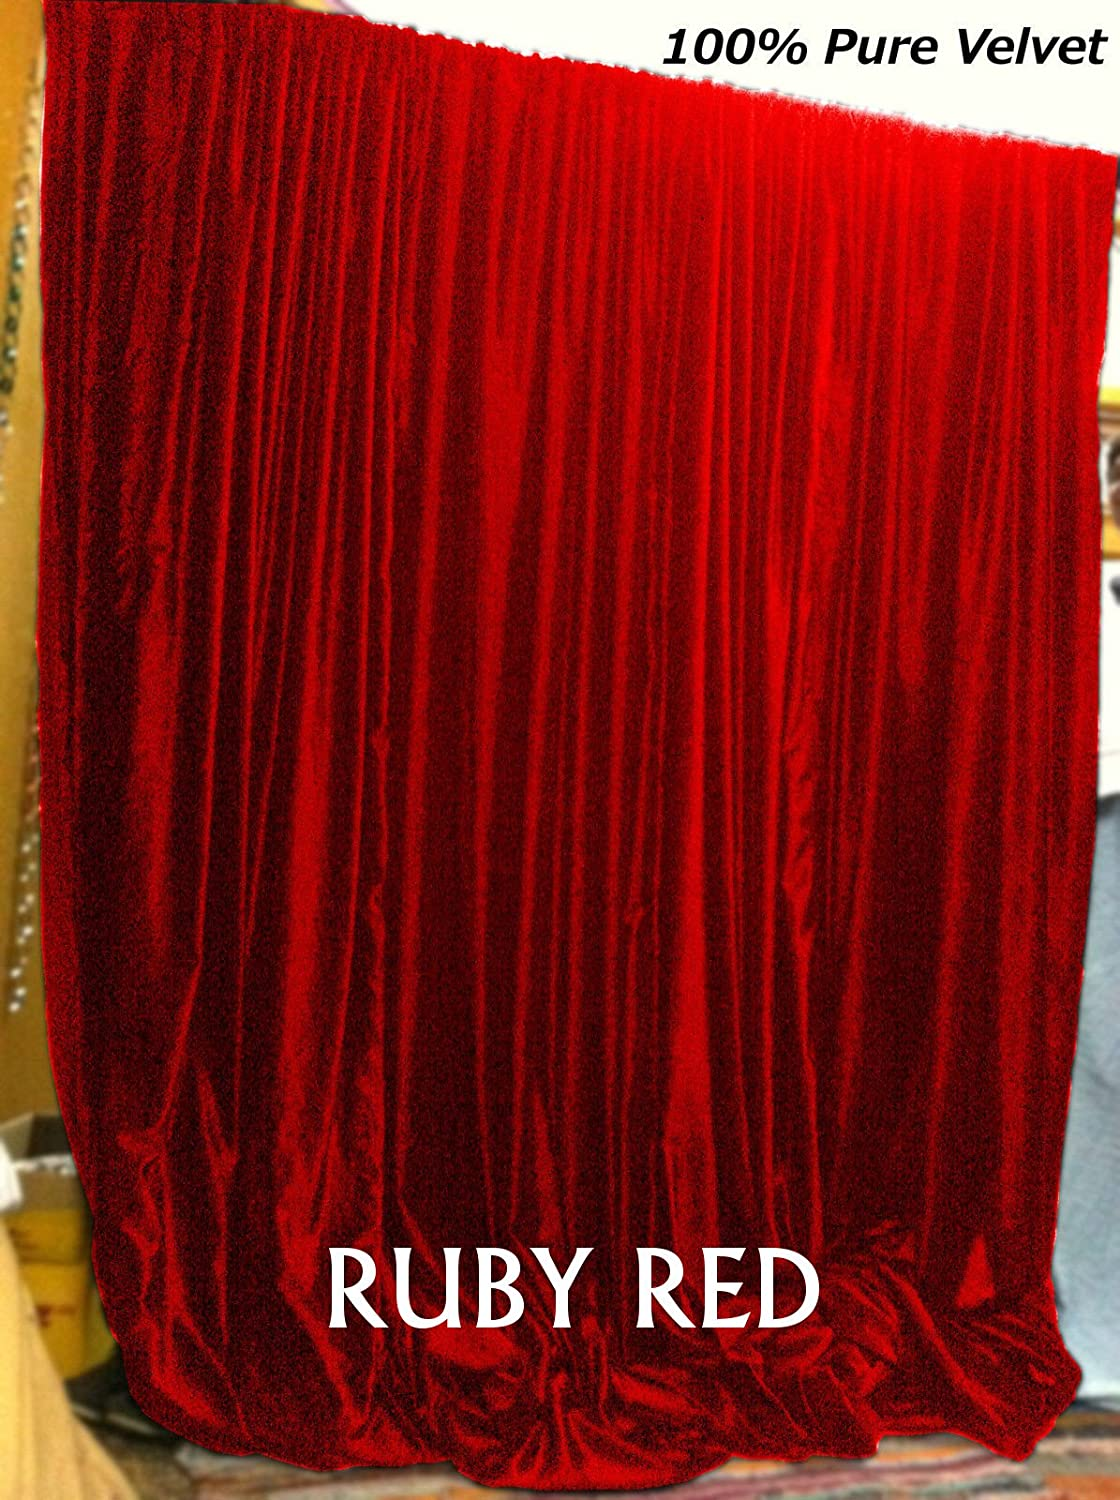 Design Velvet Curtains amazon com ruby red velvet curtains 90 in w by h one panel vinatge curtain absolute blackout sound proof window c